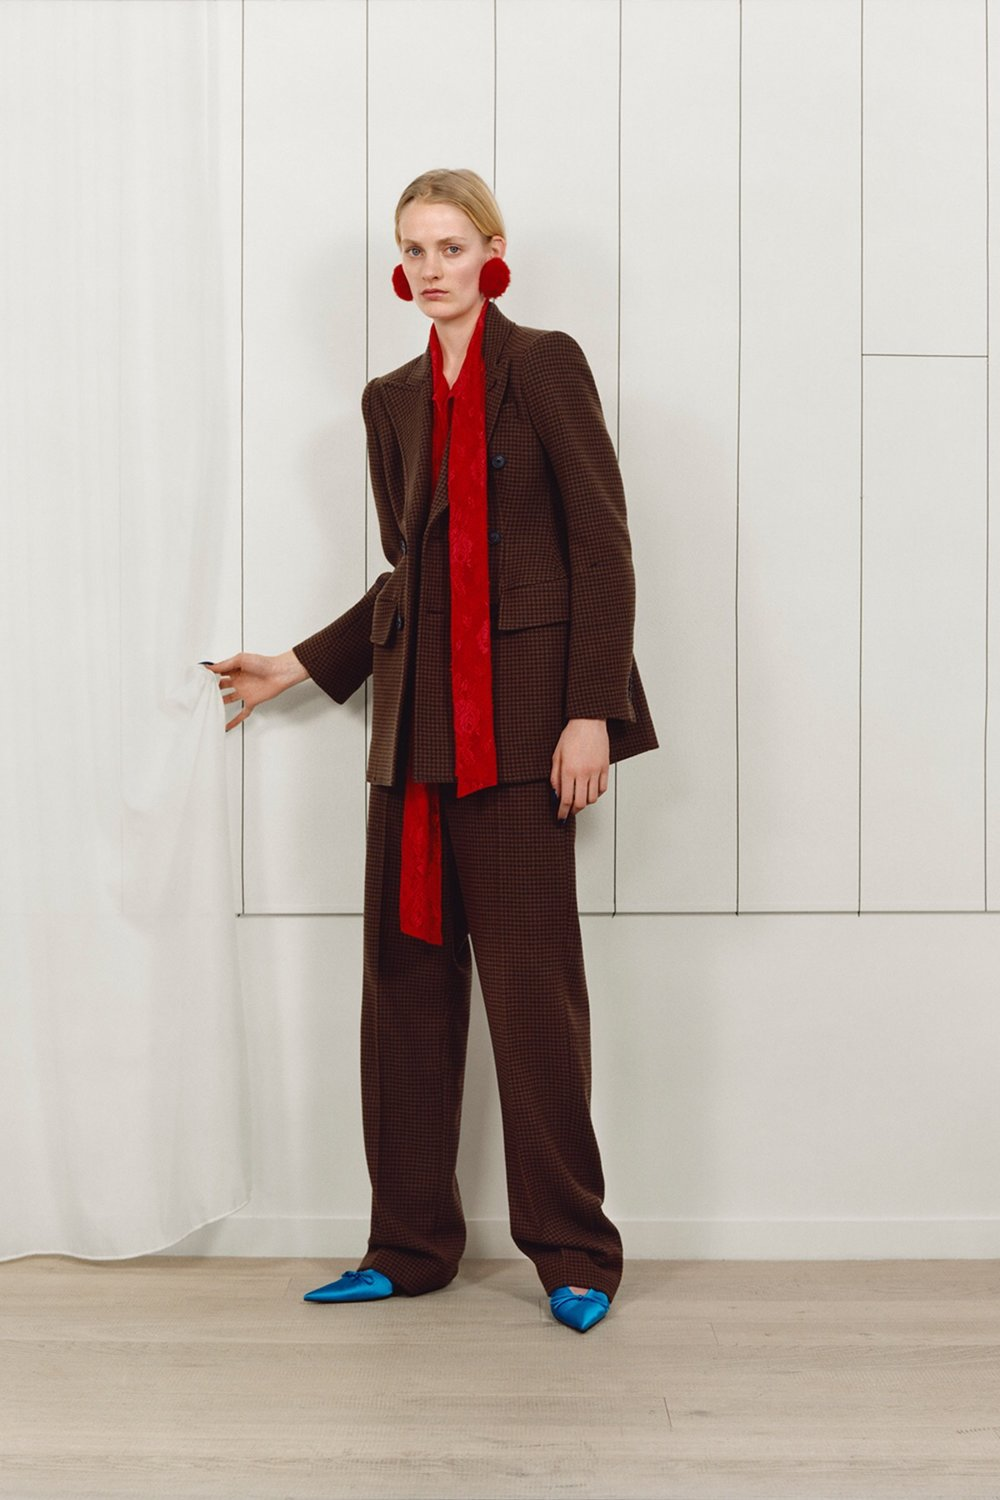 Trends: Scarlet + Sable Brown - Balenciaga Pre-Fall 2017,  via The Business Of Fashion